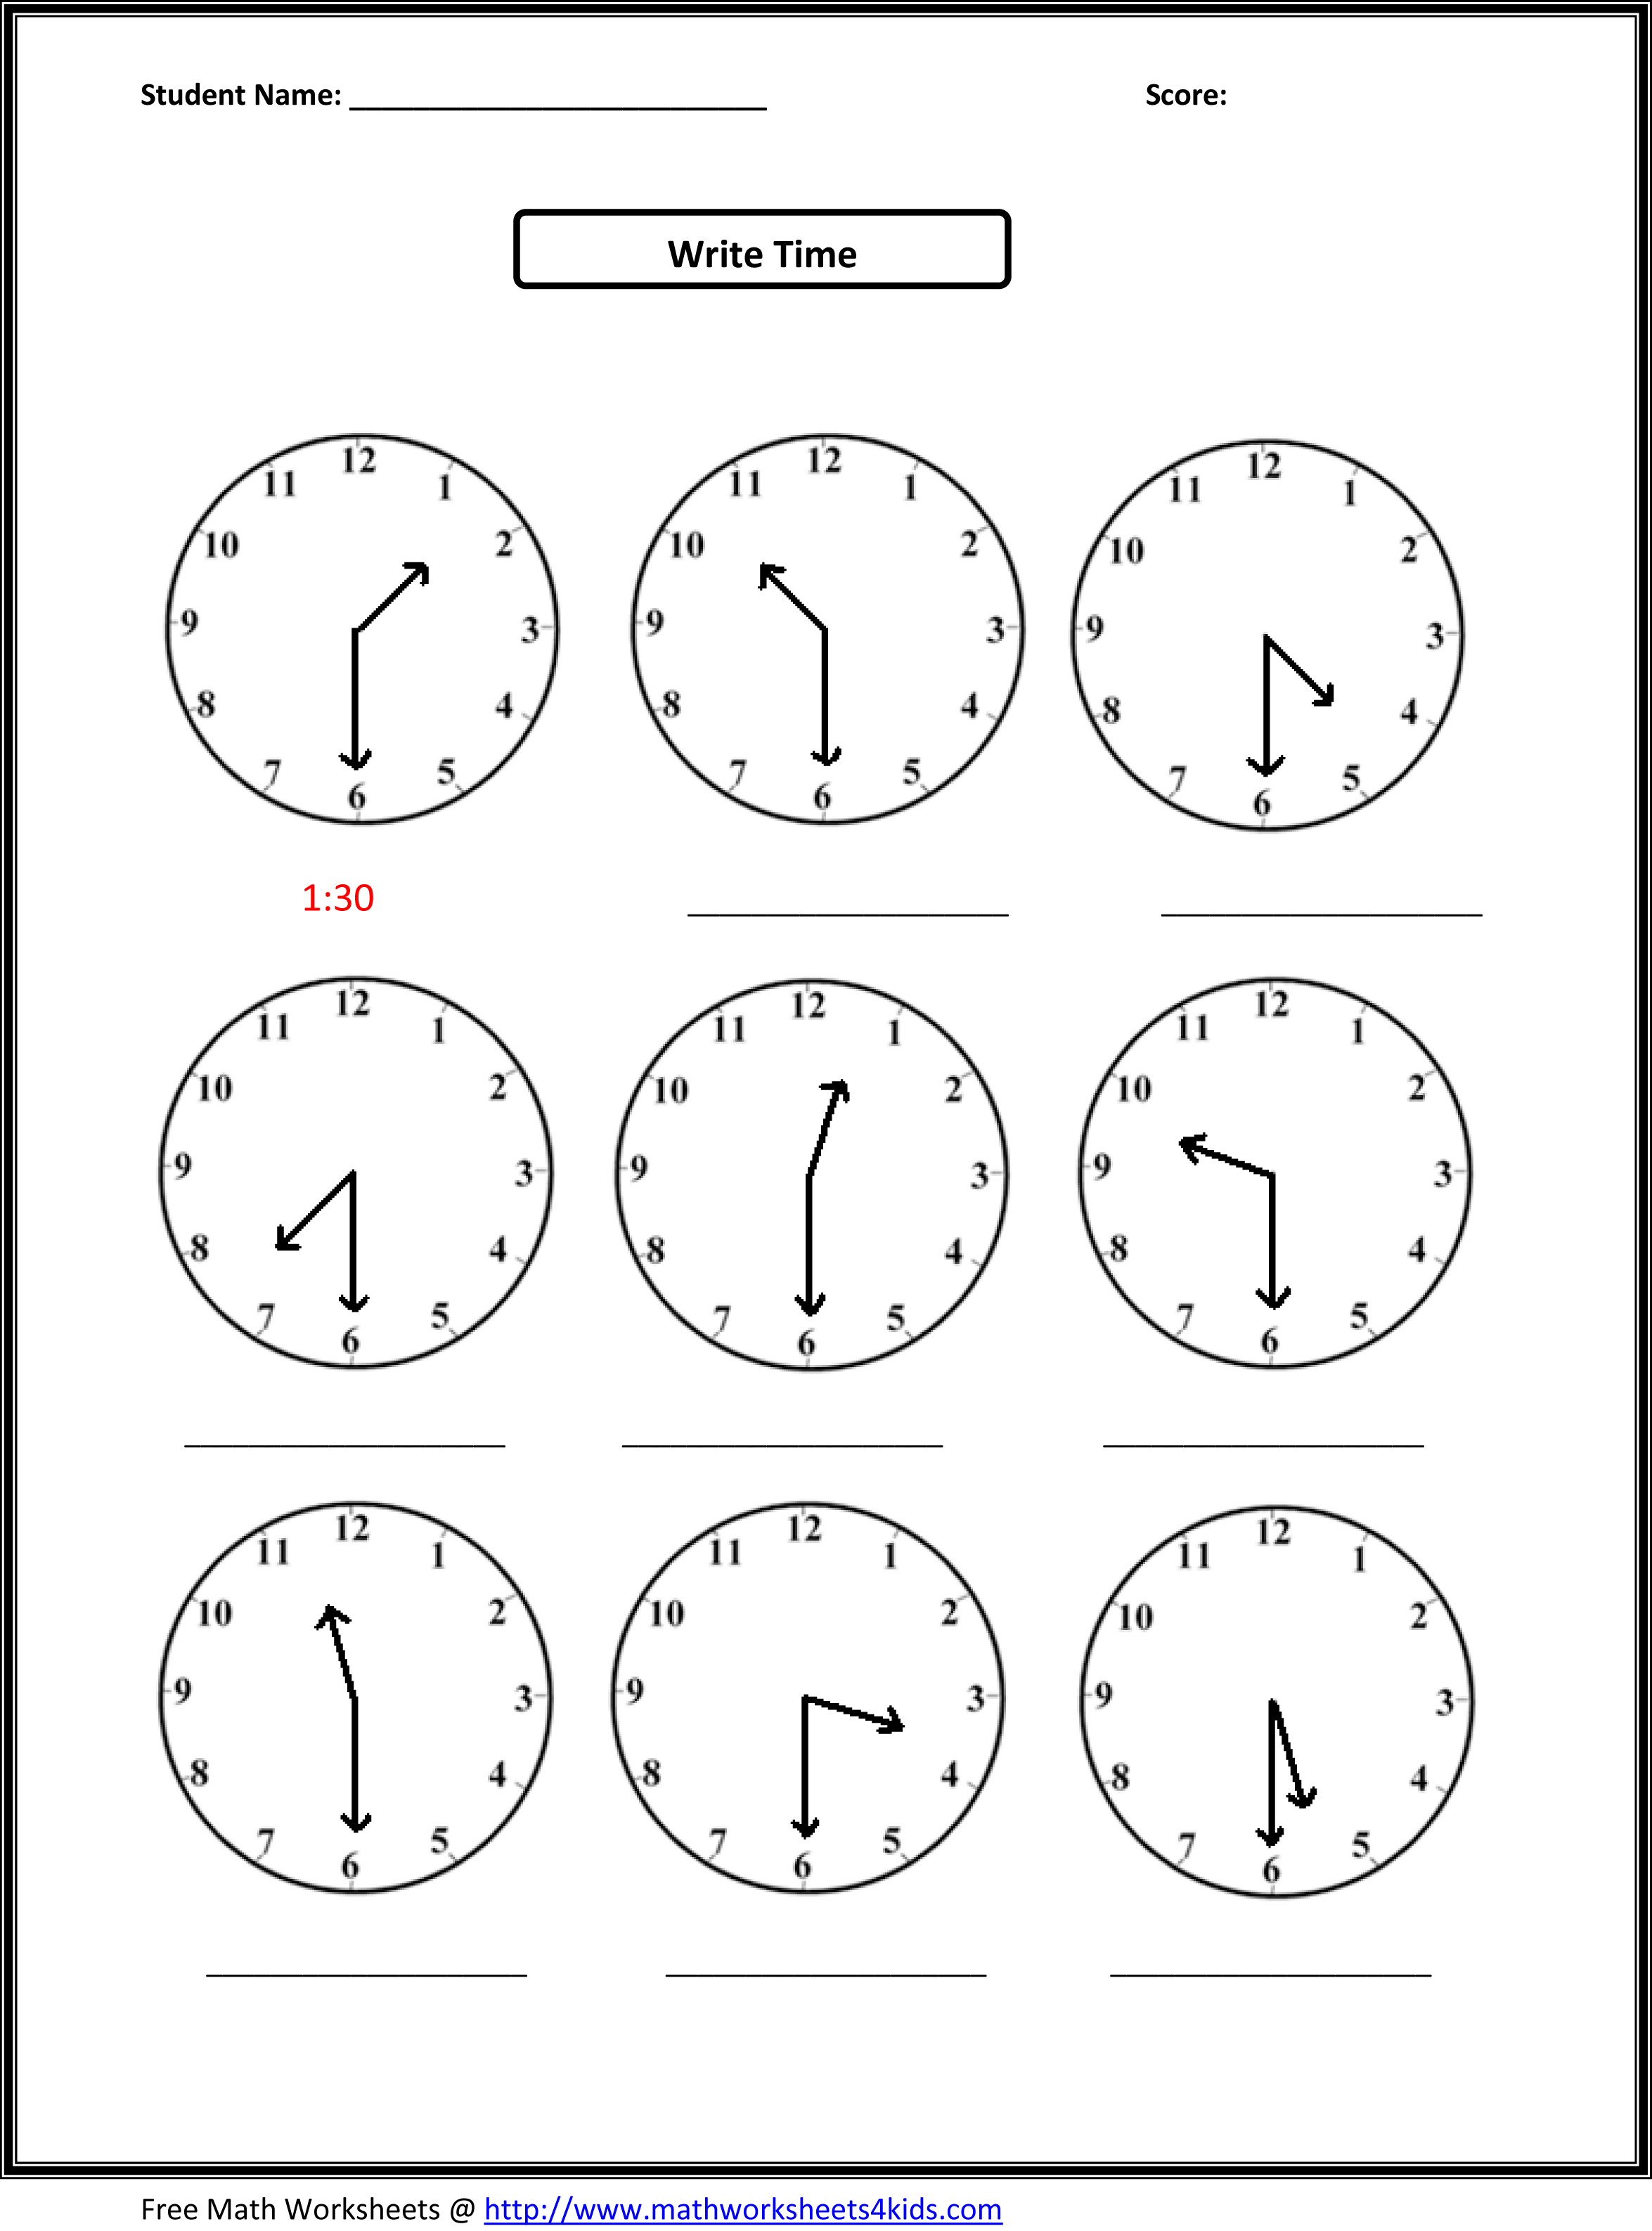 math worksheet : time math worksheets first grade  worksheets on study  writing  : 1st And 2nd Grade Math Worksheets